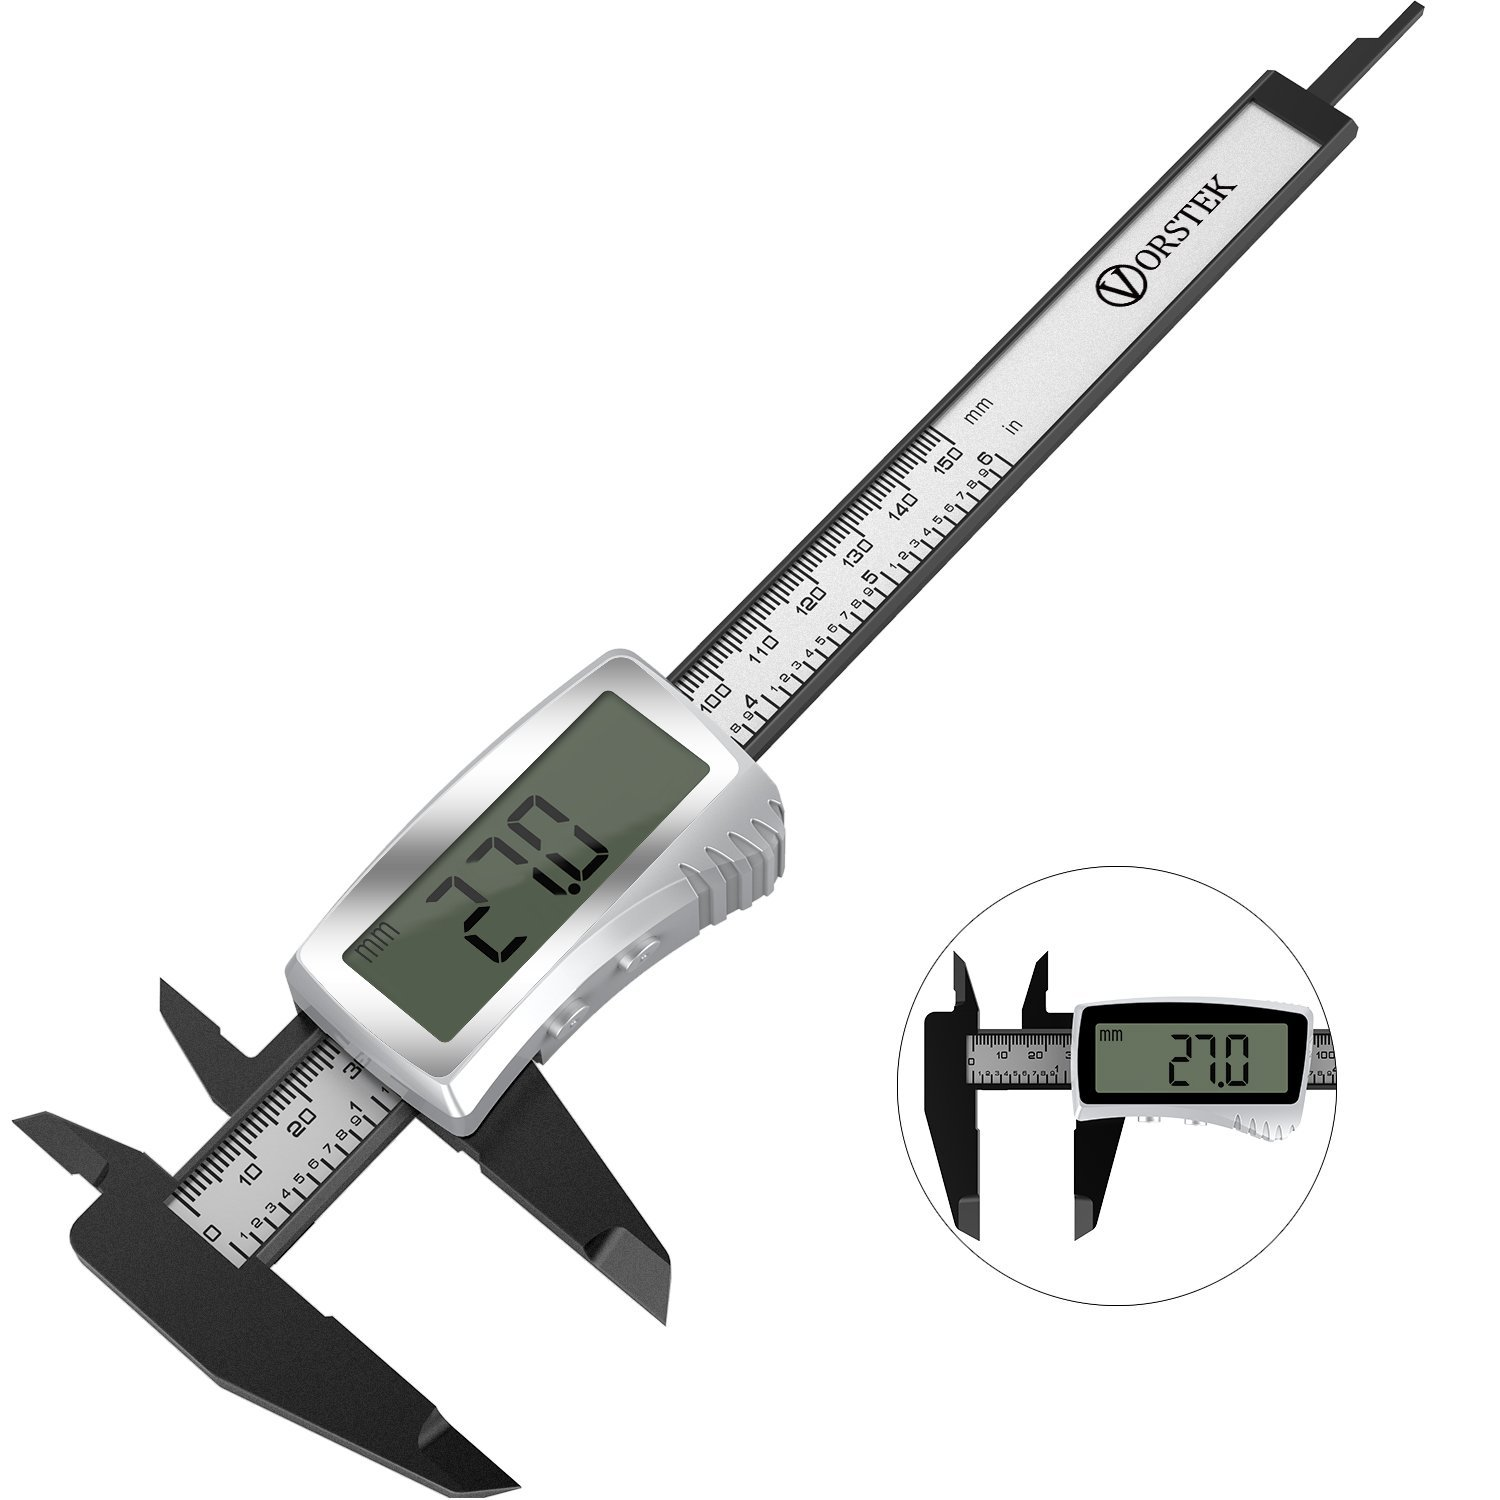 VORSTEK digital caliper Plastic metric 6 inch vernier caliper with 3V 220mAh Coin Battery Inch/Milimeter Conversion AUTO ON/OFF LCD Screen High Accurate Measuring Tool